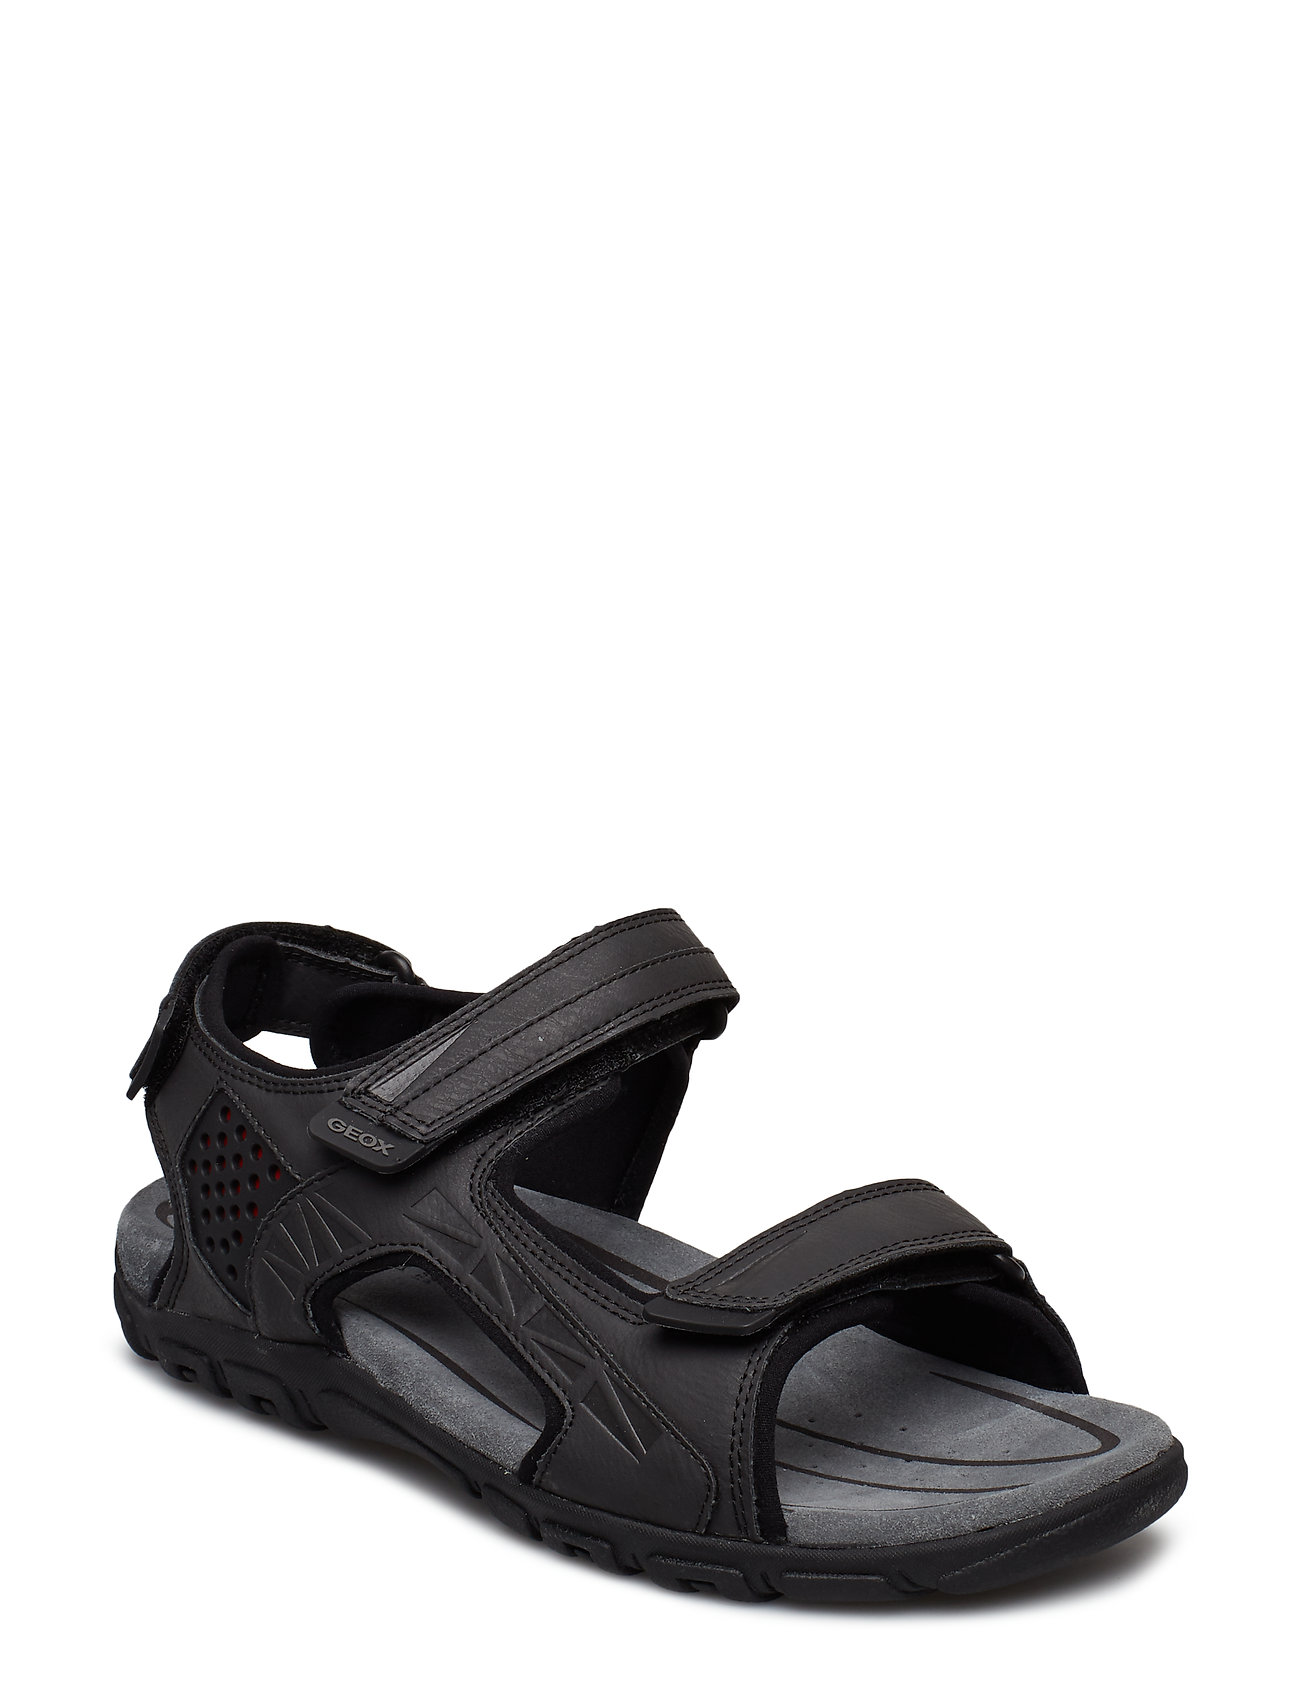 Saca la aseguranza hierro ácido  GEOX U Sandal Strada (Blk Oxford), (51.97 €) | Large selection of  outlet-styles | Booztlet.com